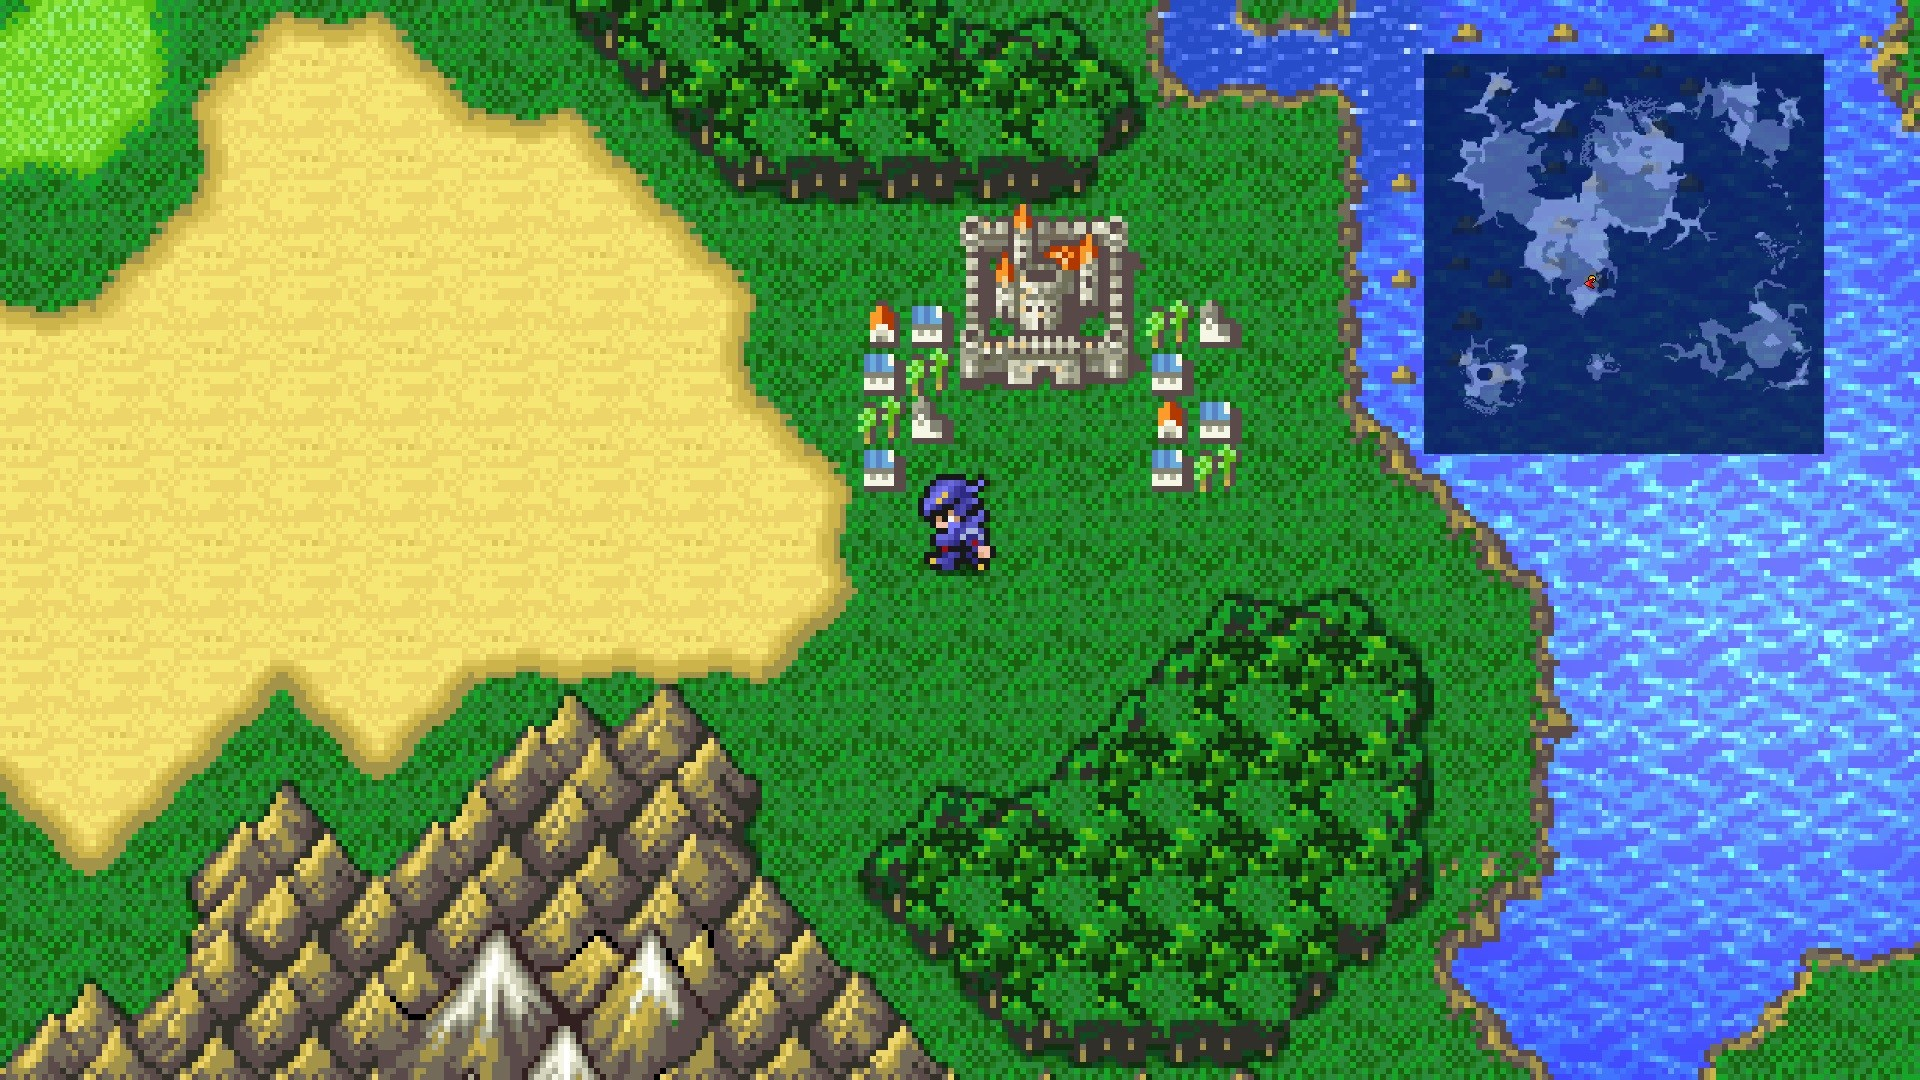 Cecil exploring the world in Final Fantasy IV Pixel Remaster